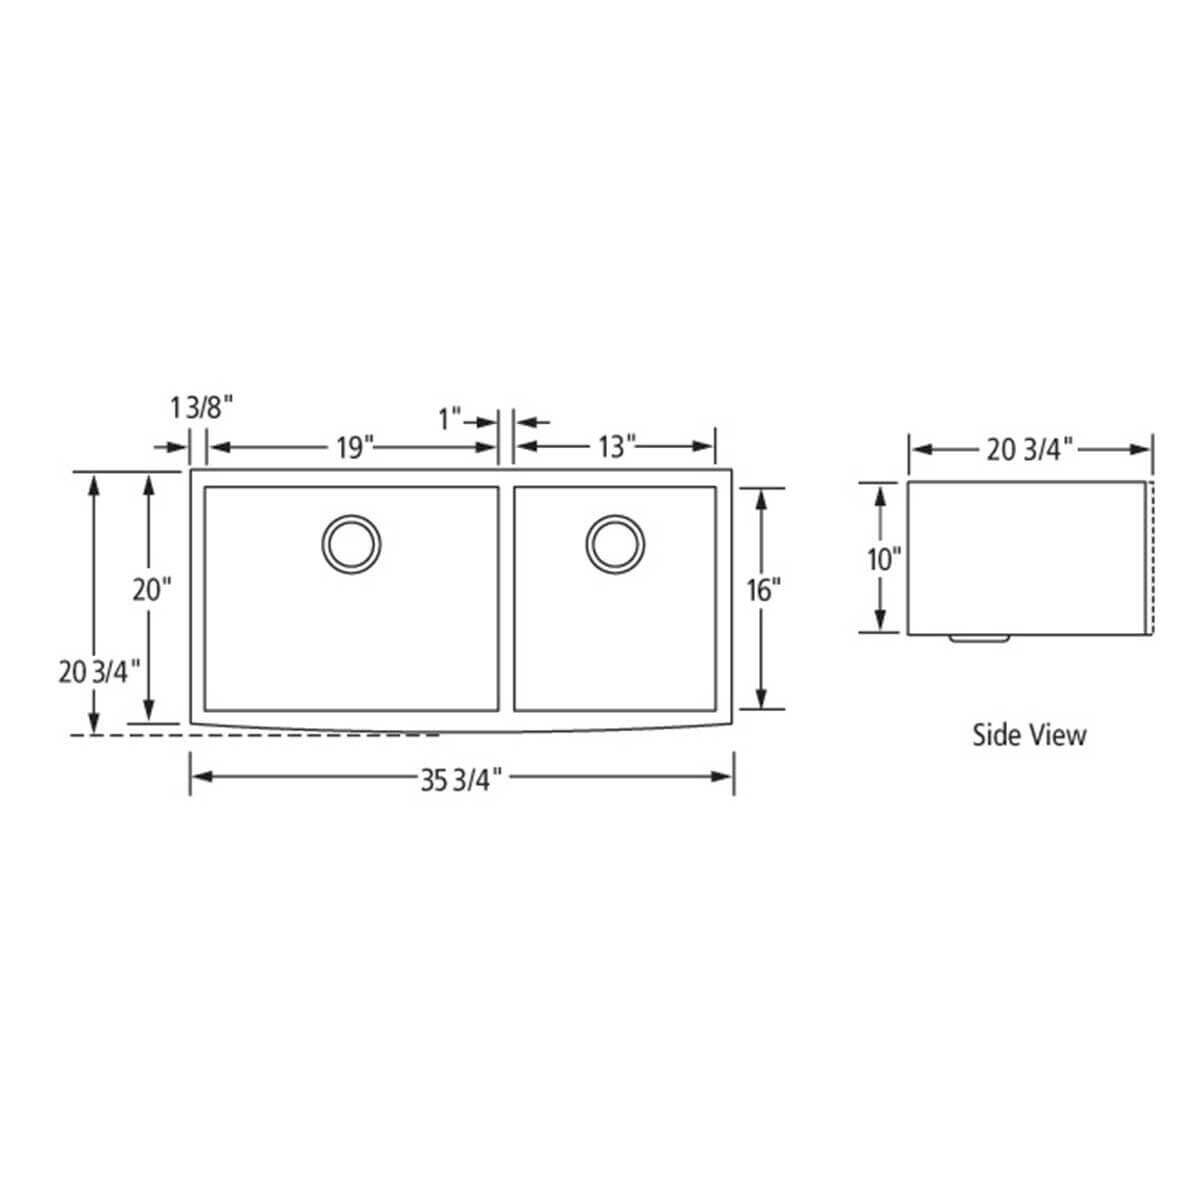 Artisan CPAZ3621-D1010 Chef Pro Sink Dimensions